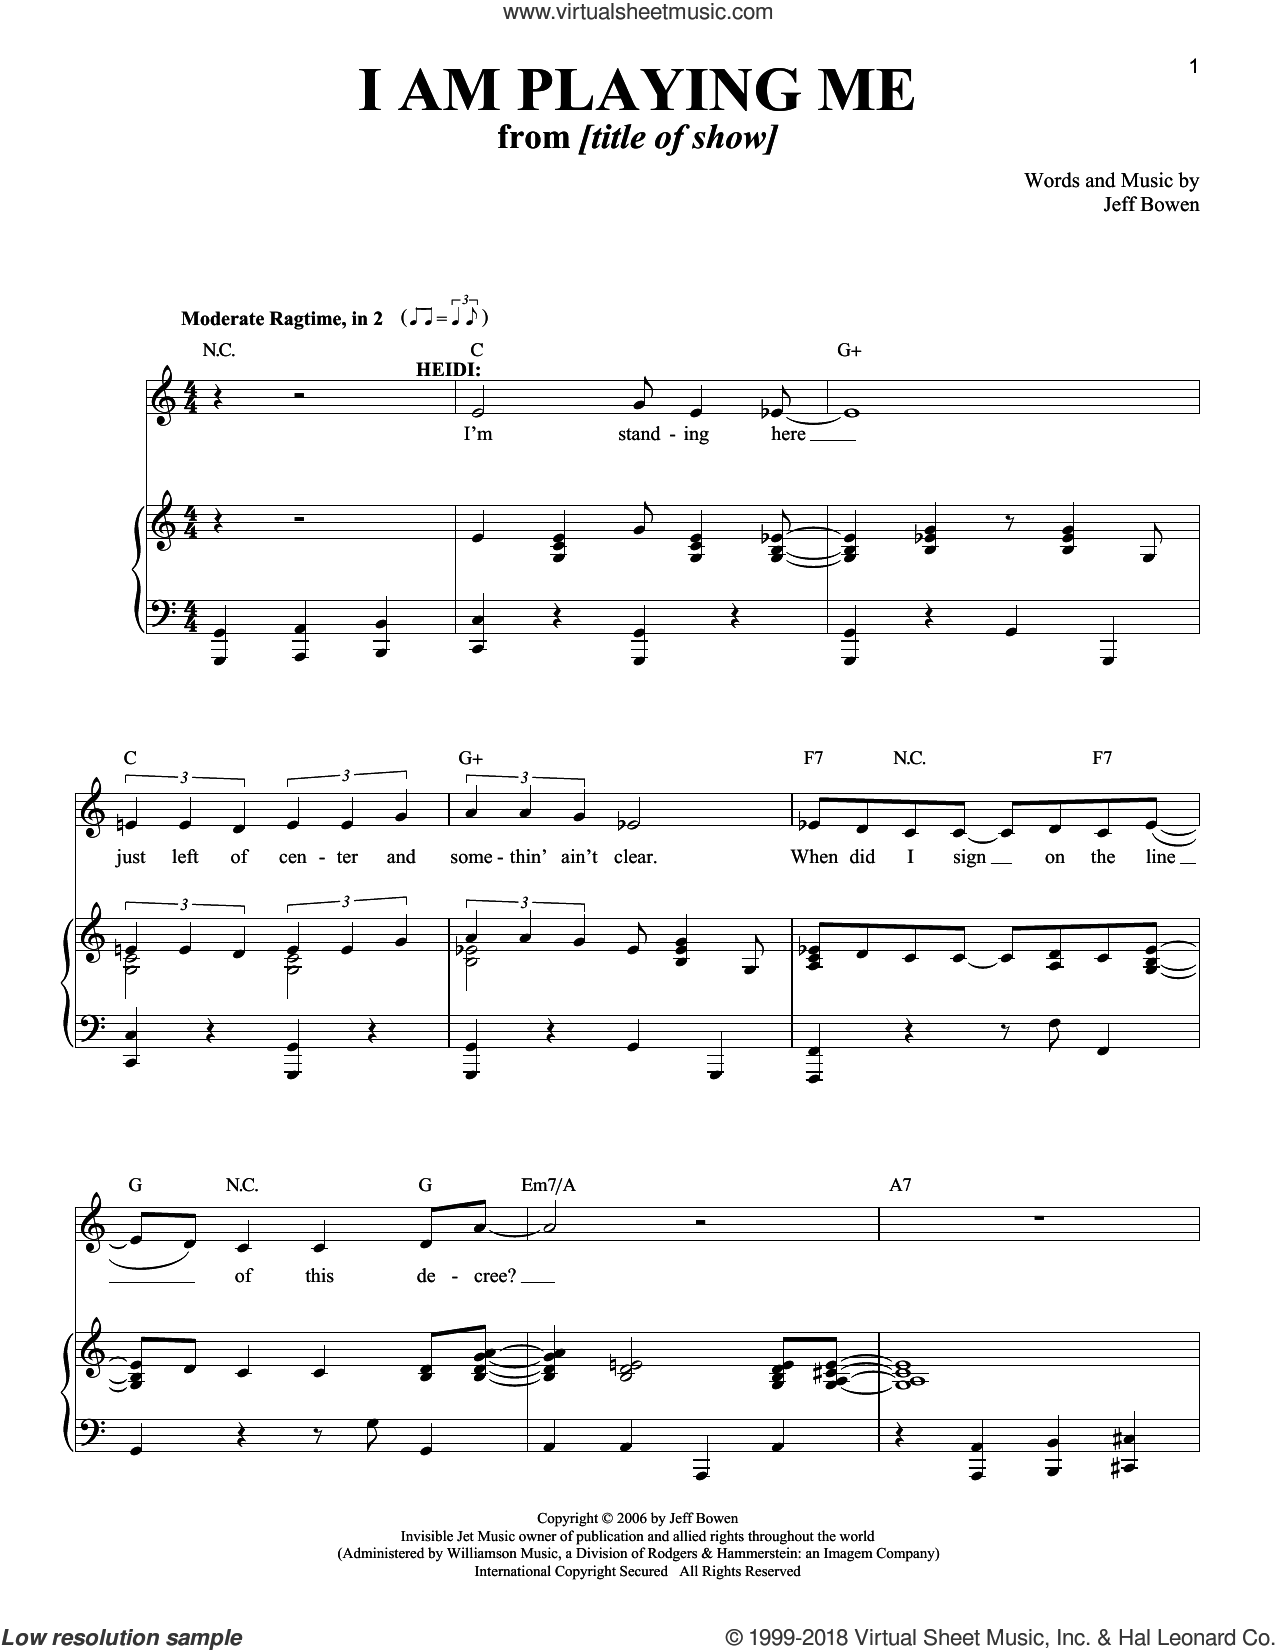 I Am Playing Me sheet music for voice and piano by Jeff Bowen, intermediate skill level